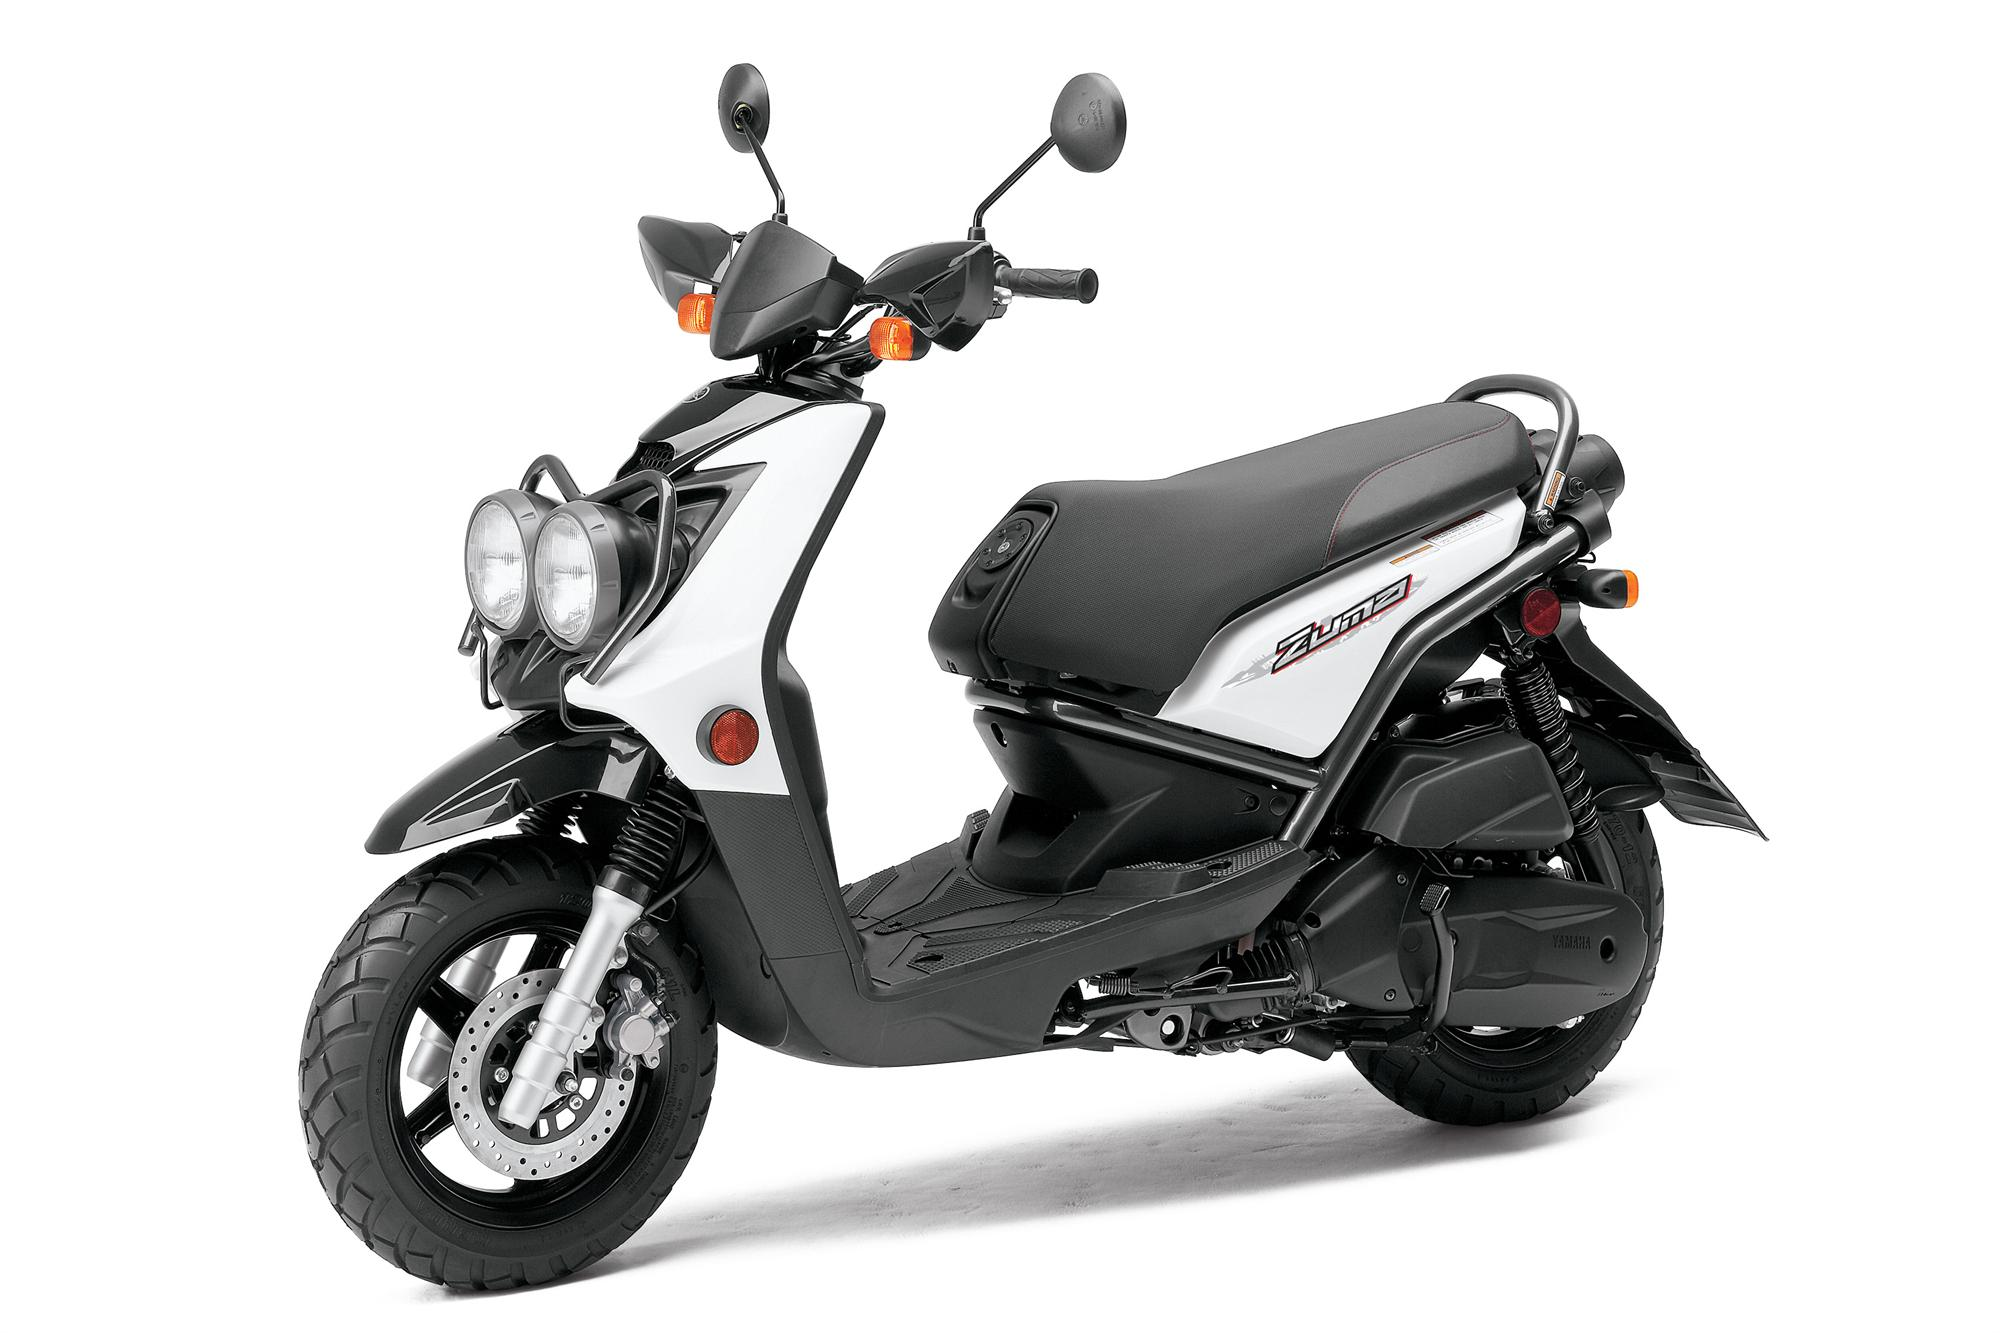 yamaha zuma 125 specs 2011 2012 autoevolution. Black Bedroom Furniture Sets. Home Design Ideas